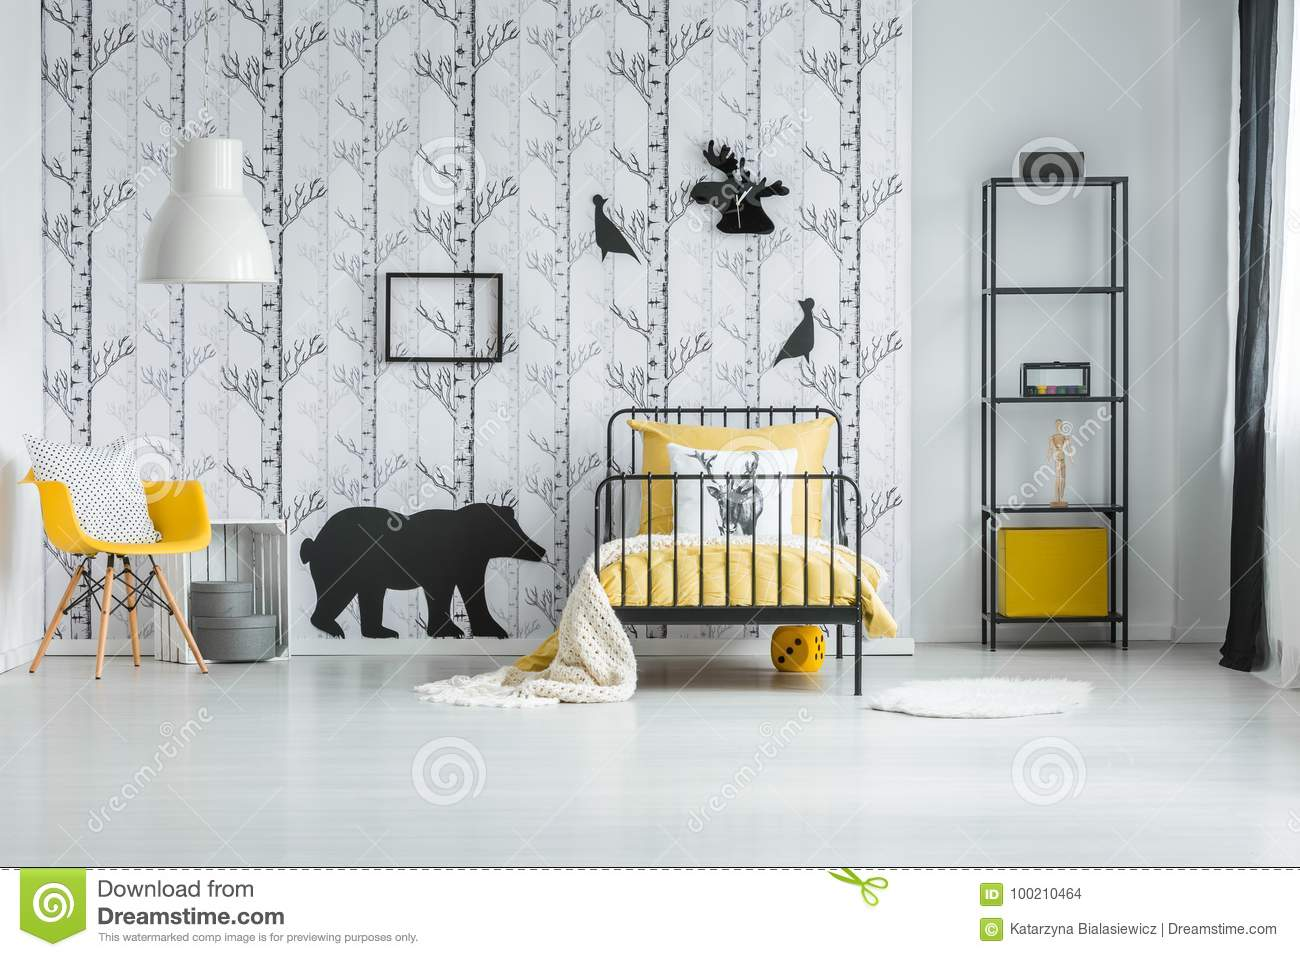 White blanket on yellow overlay on bed in white bedroom with yellow chair against inspiring wallpaper